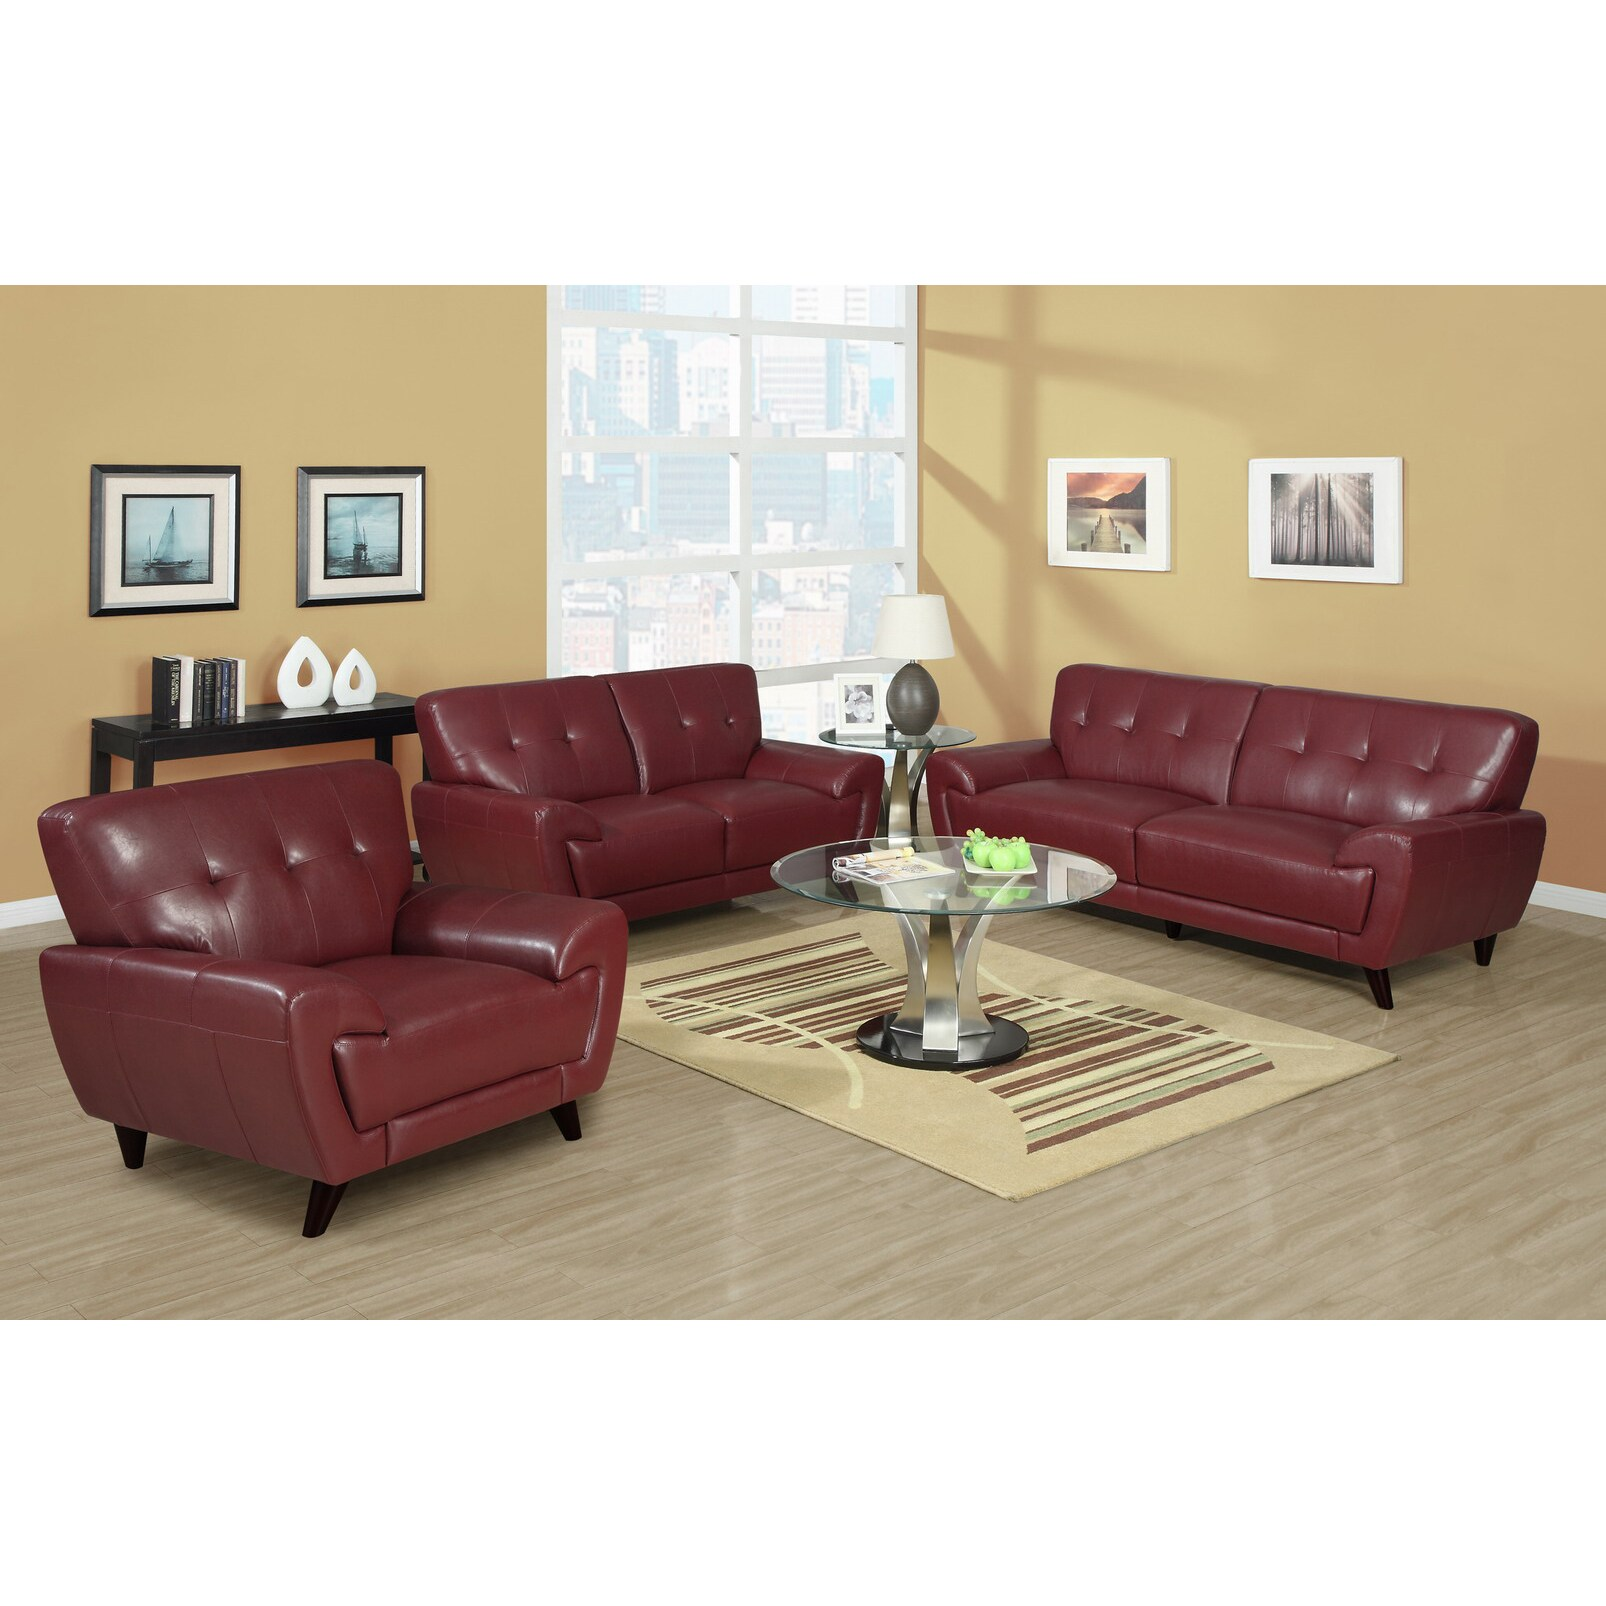 red bonded leather upholstery living room lounge couch seat sofa